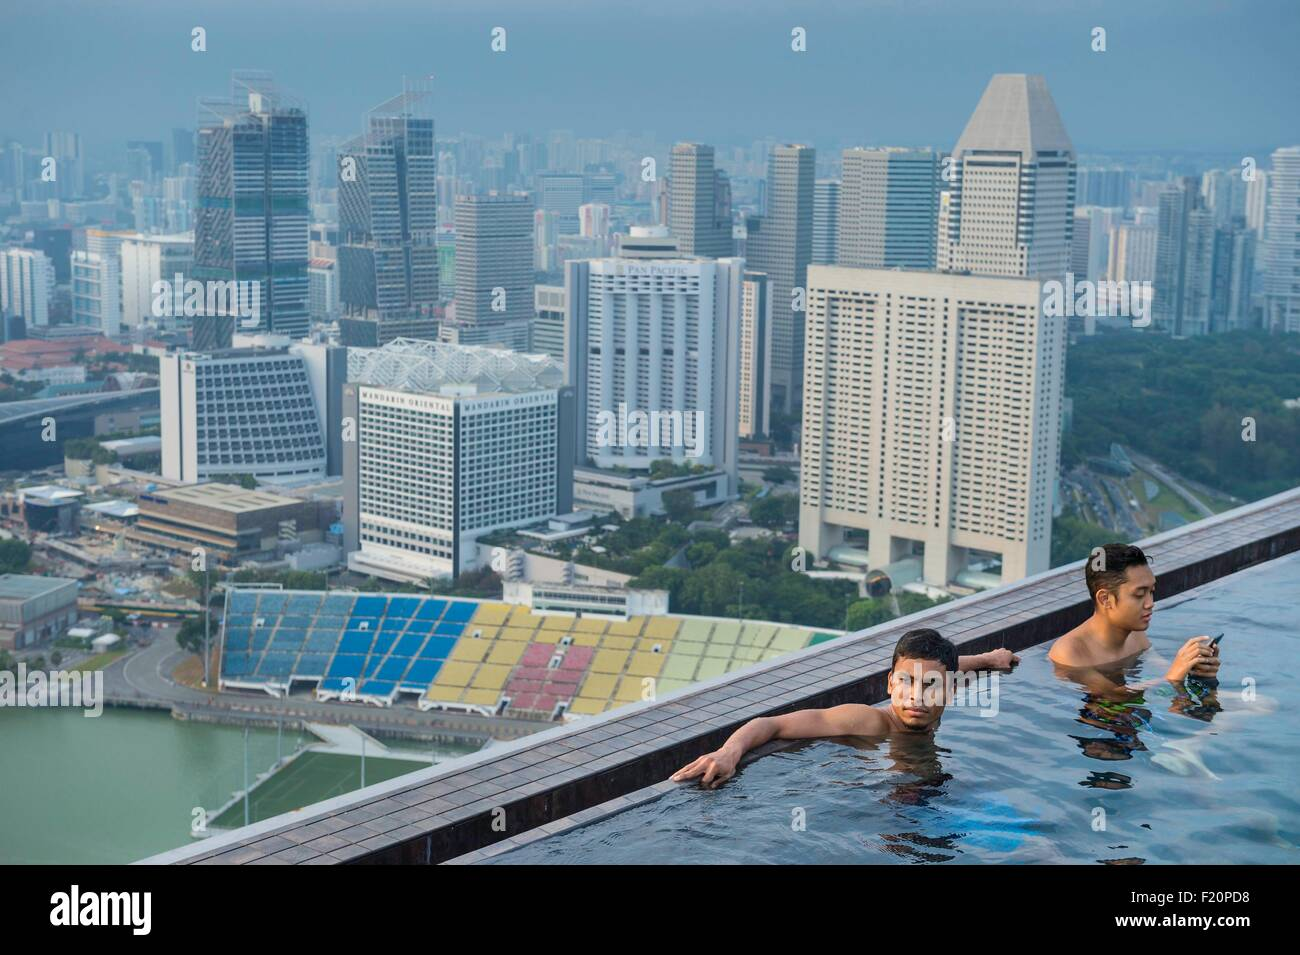 Singapore Marina Bay Swimming Pool On The Rooftop Of